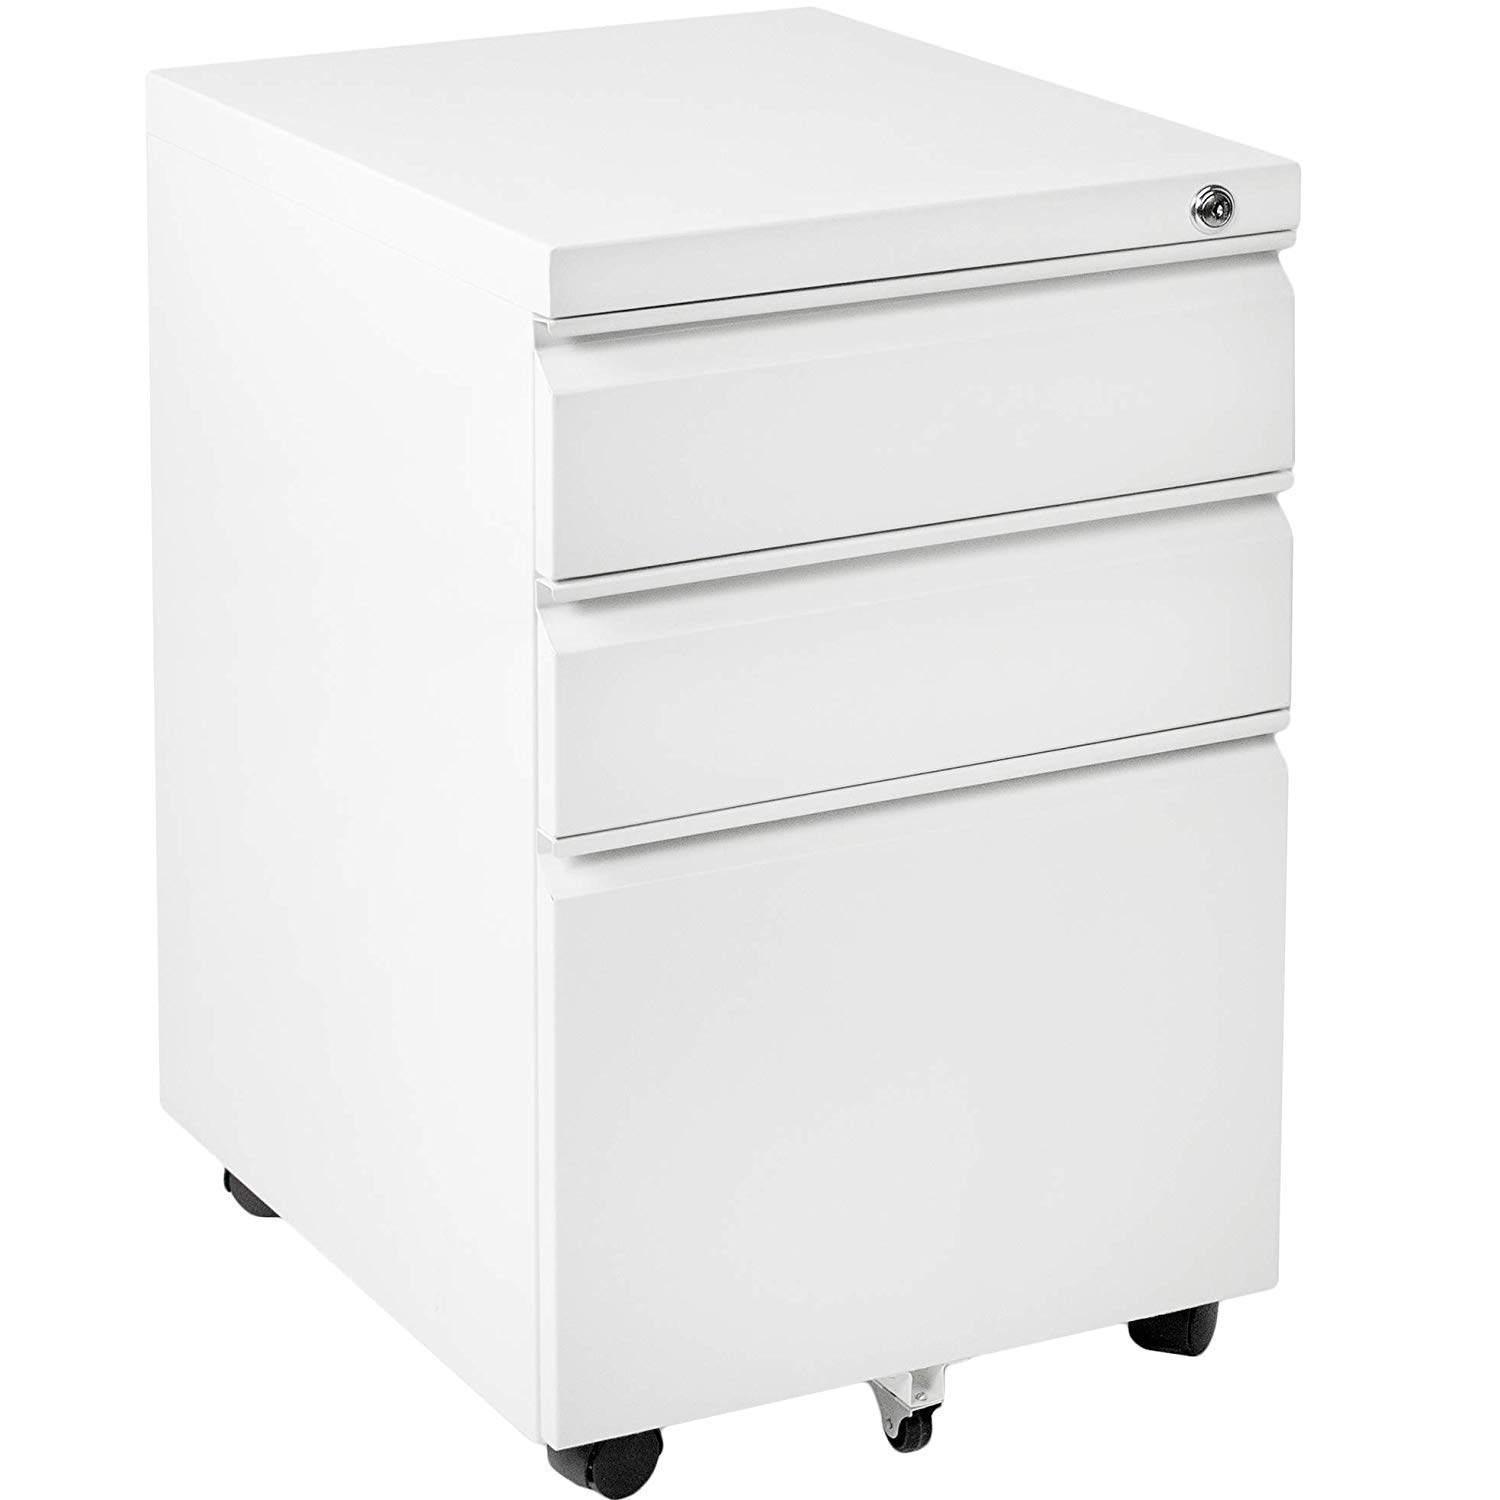 INVIE Mobility Cabinet for Closet/Office, Rolling Filing Cabinet 3 Drawers Fully Assembled White